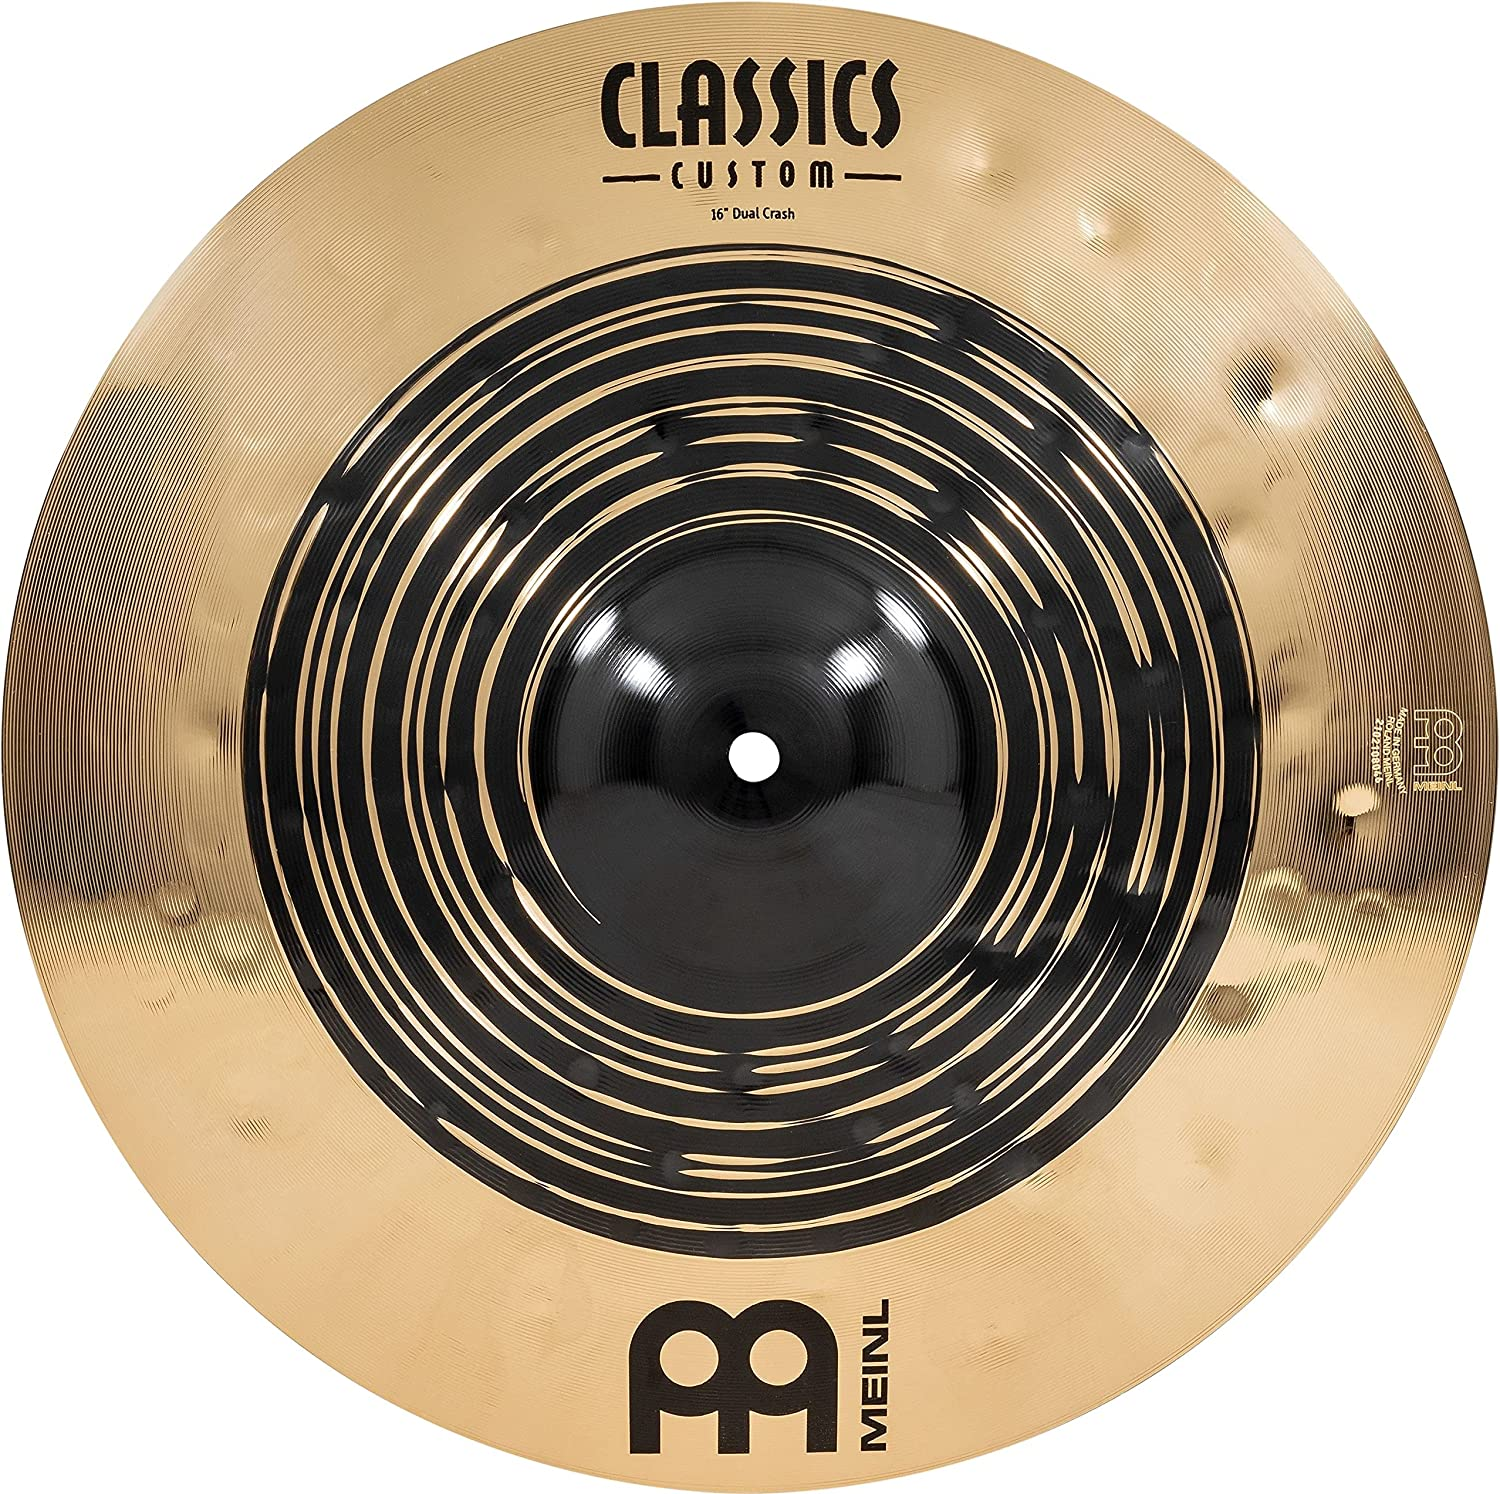 New color Meinl Cymbals Classics Custom Directly managed store Dual 16